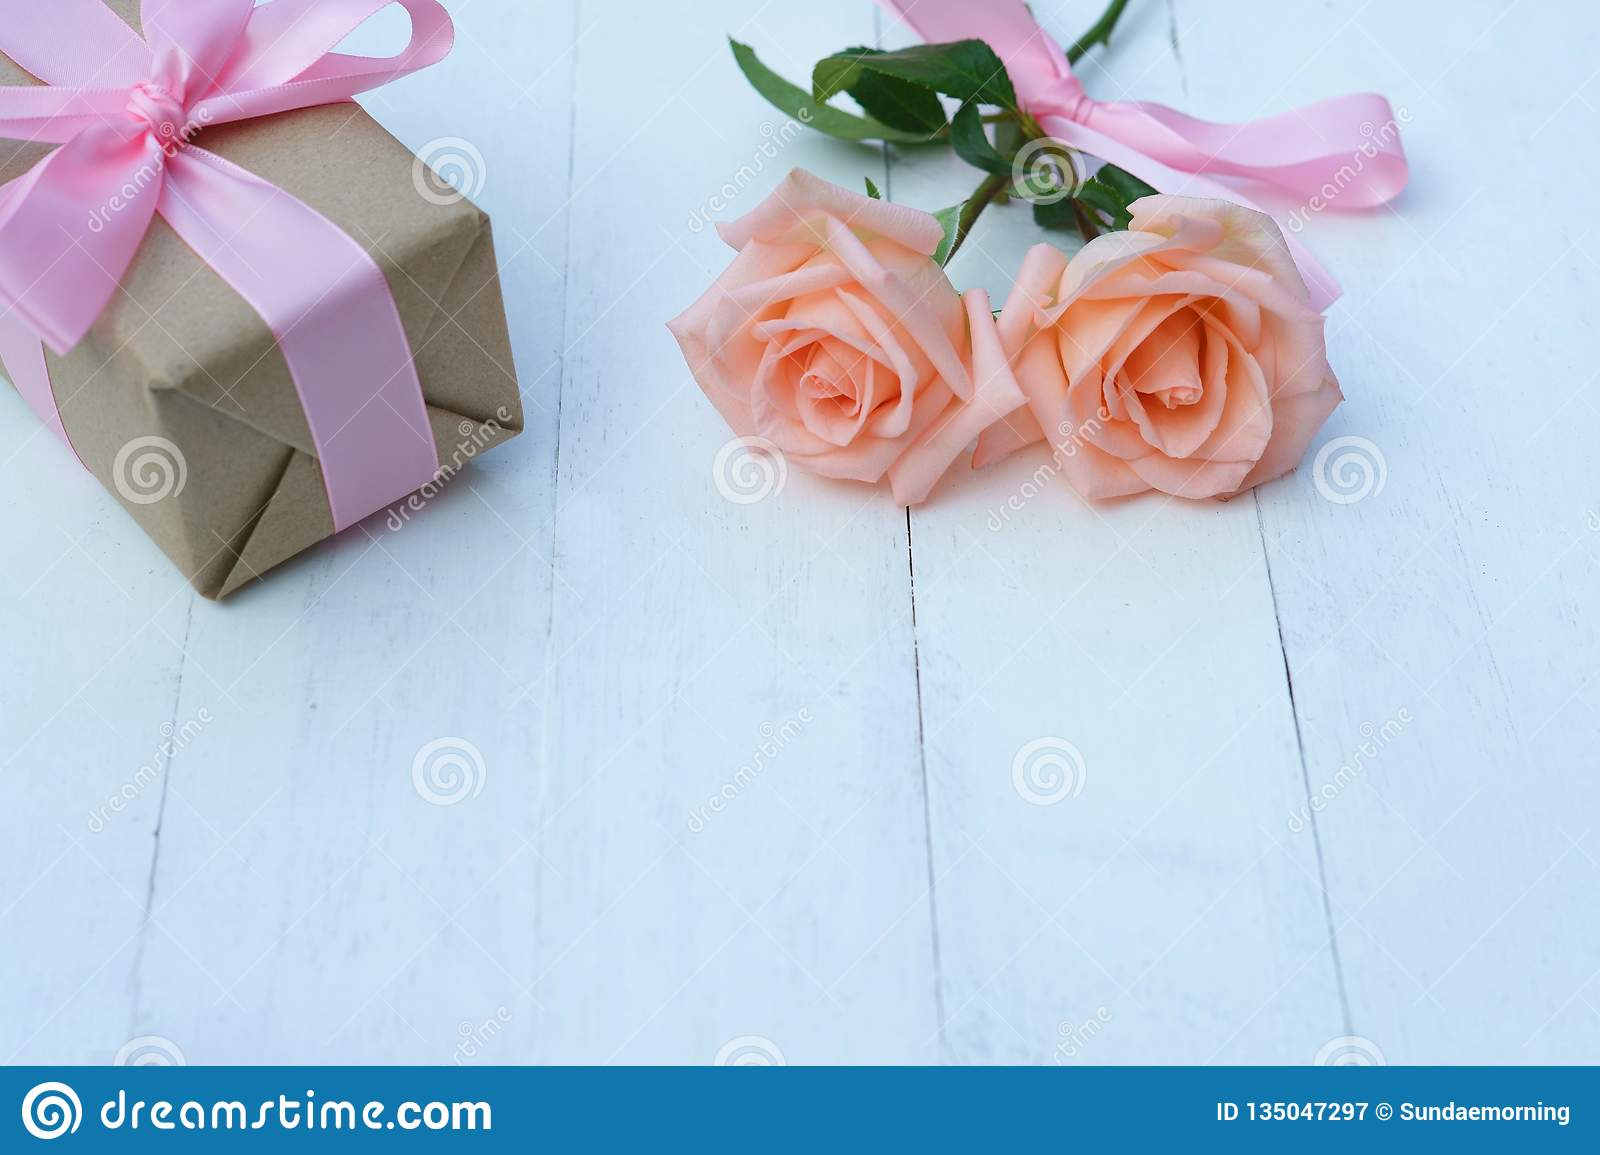 Lovely soft orange pink color rose tied by pink ribbon and brown gift box on white wood table background, sweet valentine present